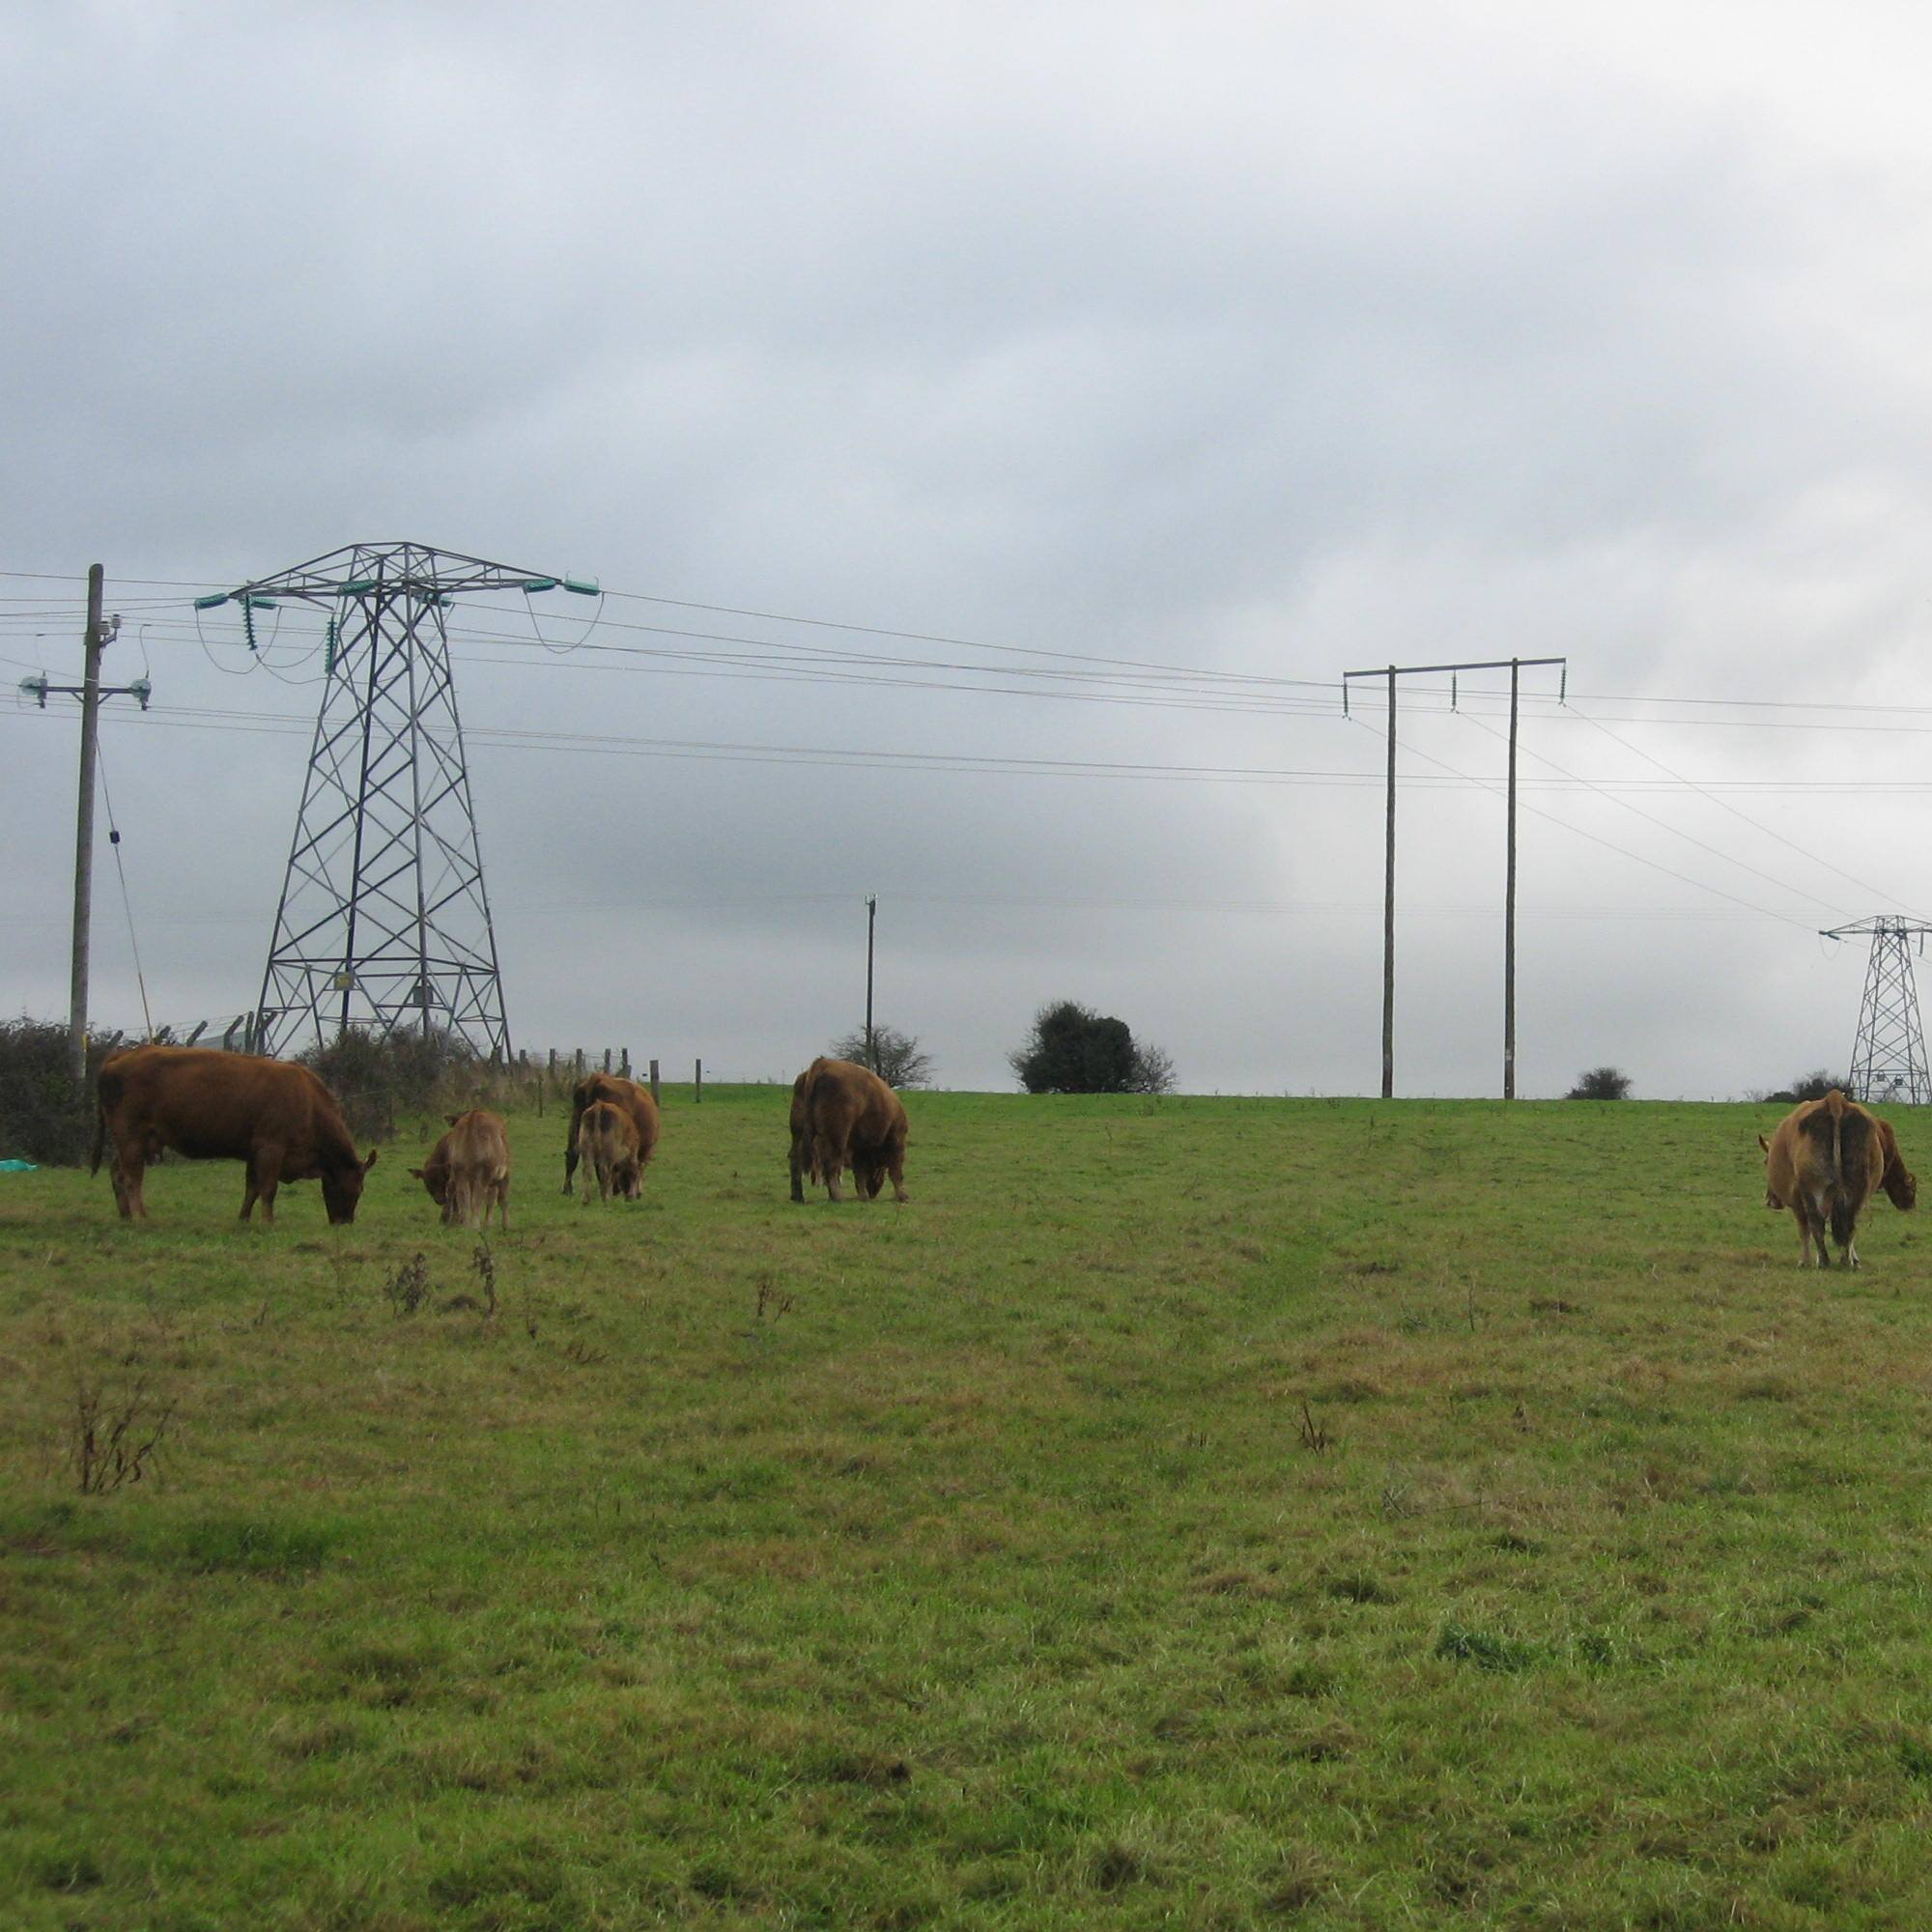 Image showing electricity pylons during field walking